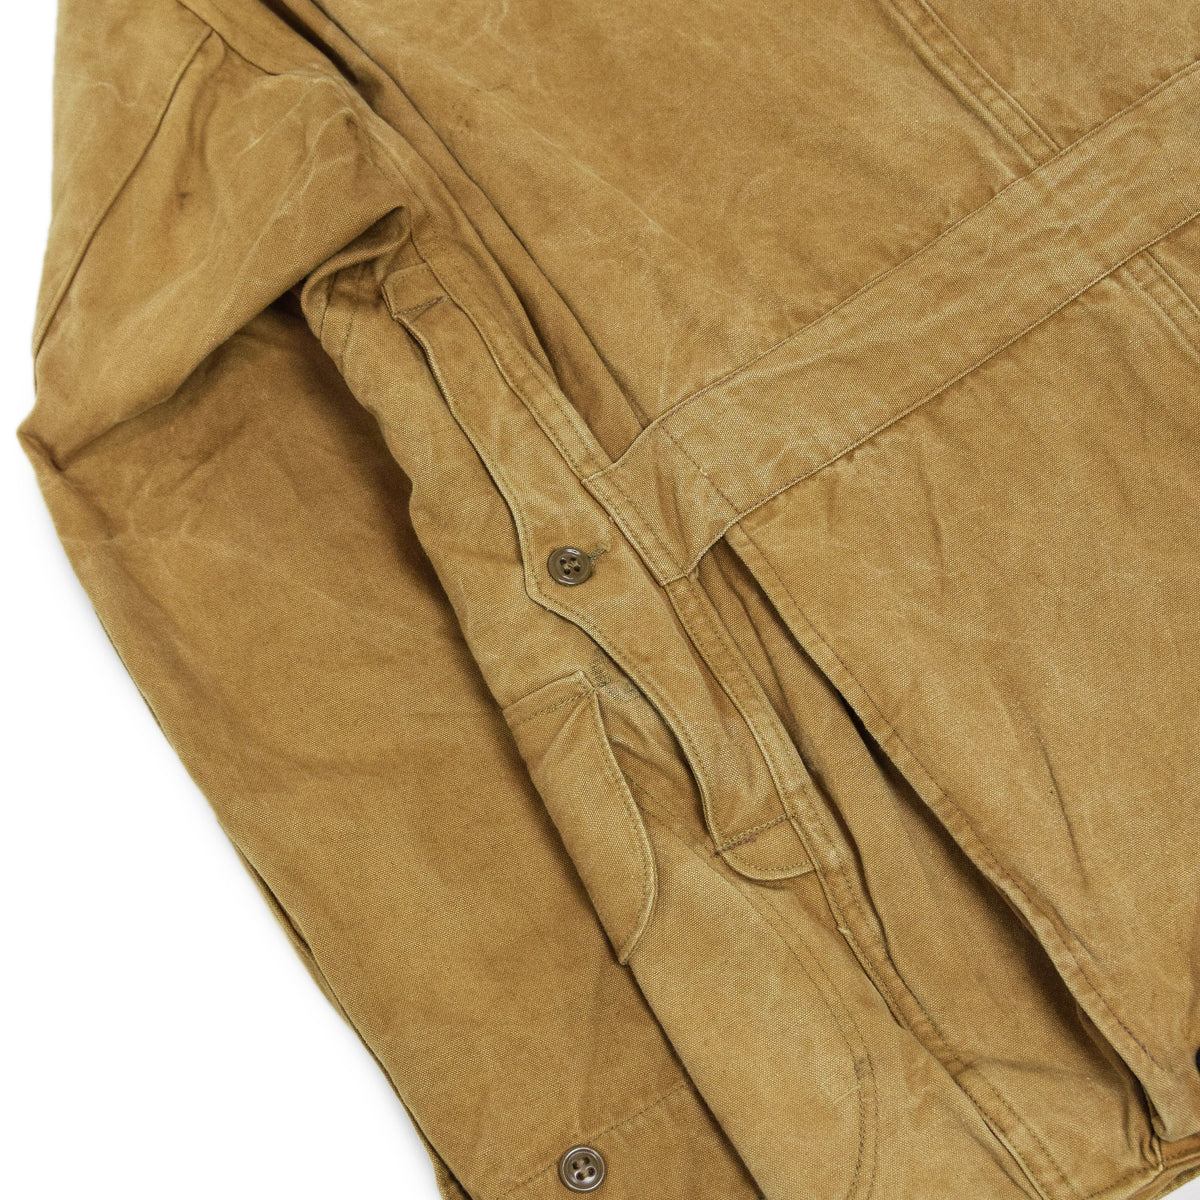 Vintage 1930s Mohawk Duxbak NY Hunting Tan Canvas Shooting Field Jacket S / M BACK HAME POUCH